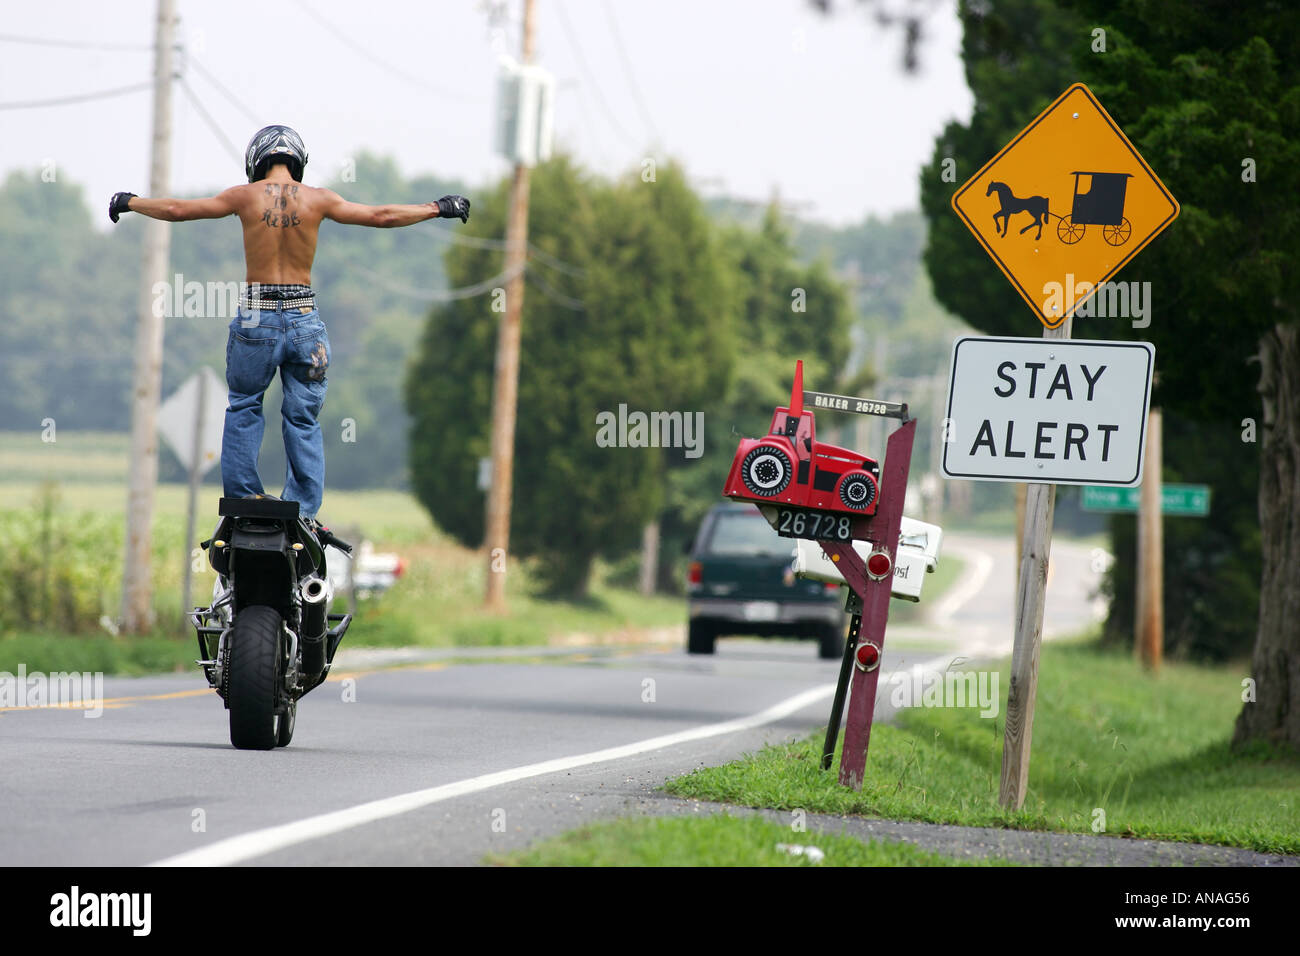 Motorcycles doing stunts including wheelies and jesus christs and burnouts - Stock Image